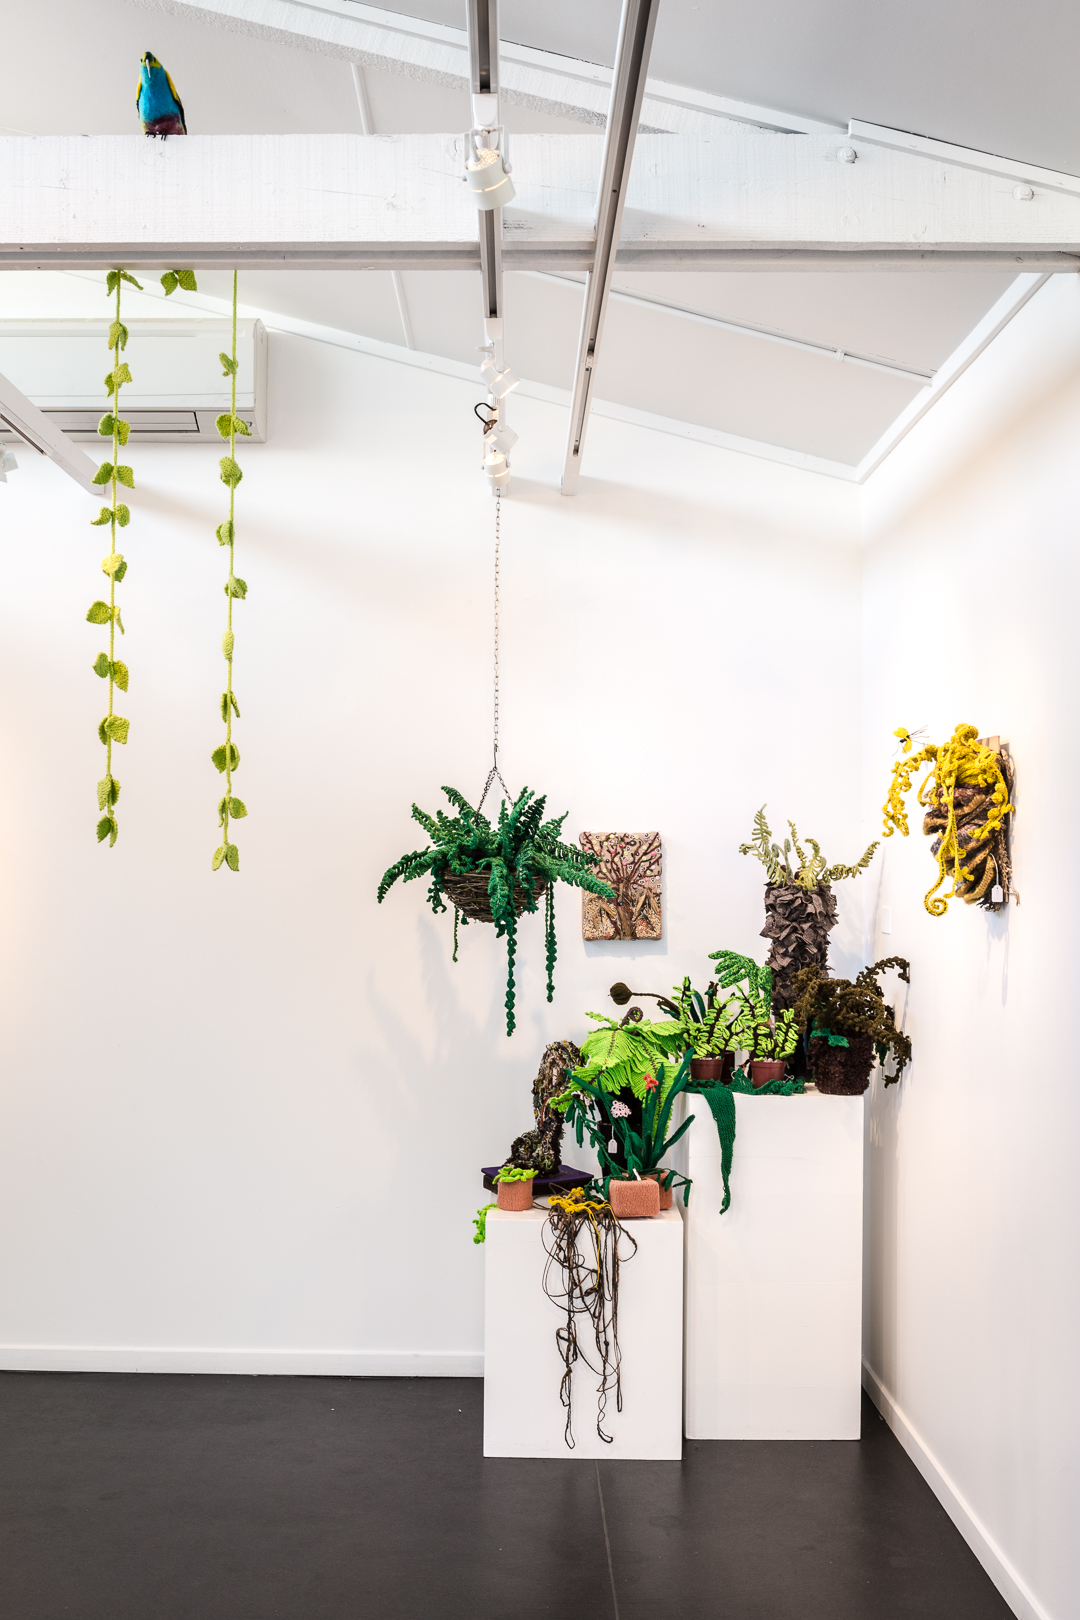 Installation view: 'Objects in Space: Artists in the Garden'. Image courtesy the artists. Photography: Document Photography